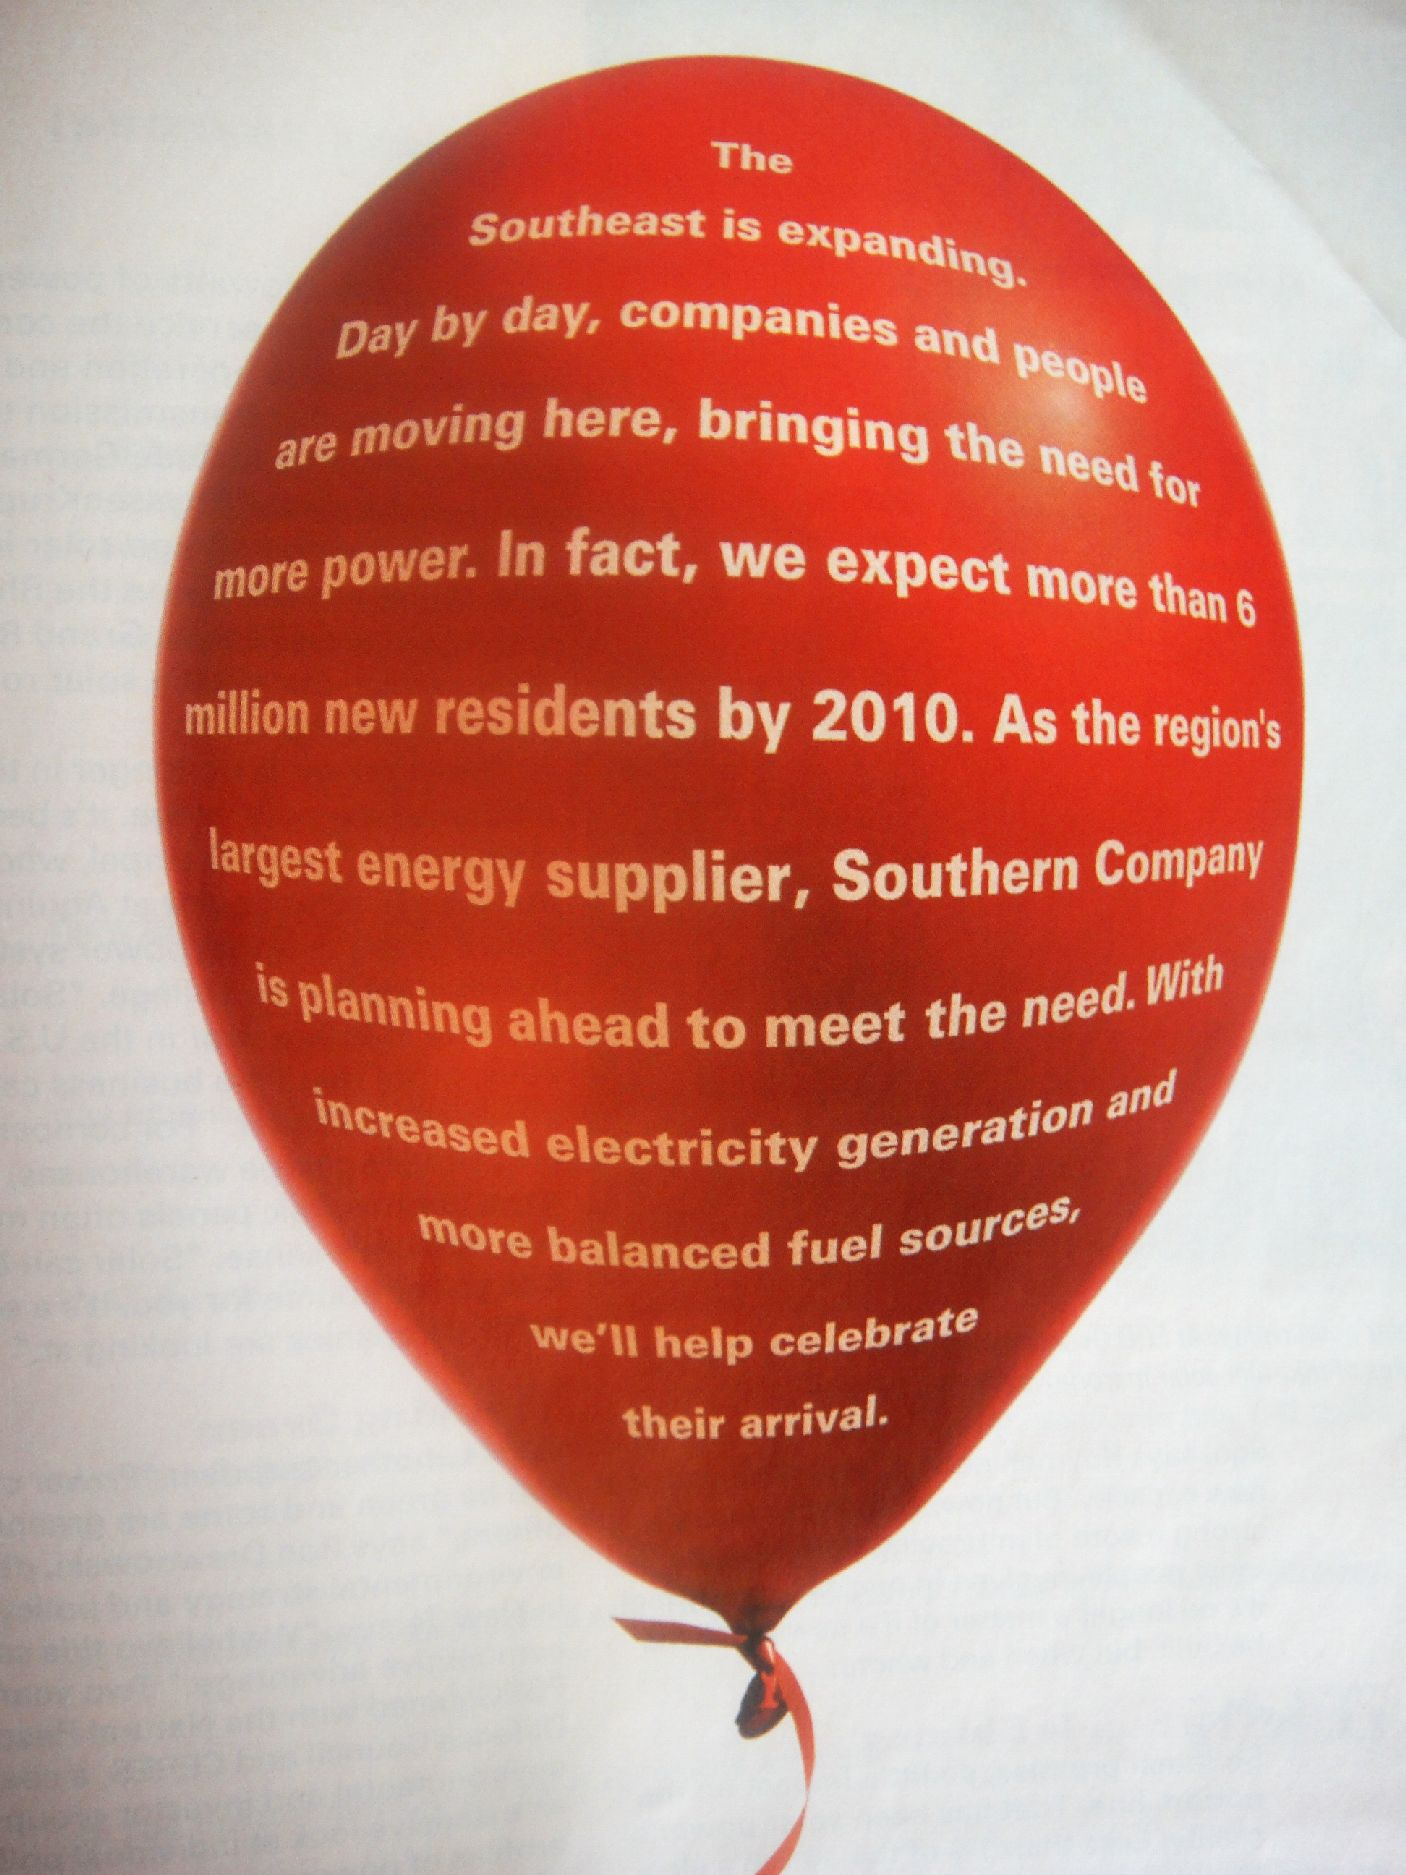 Red balloon photo